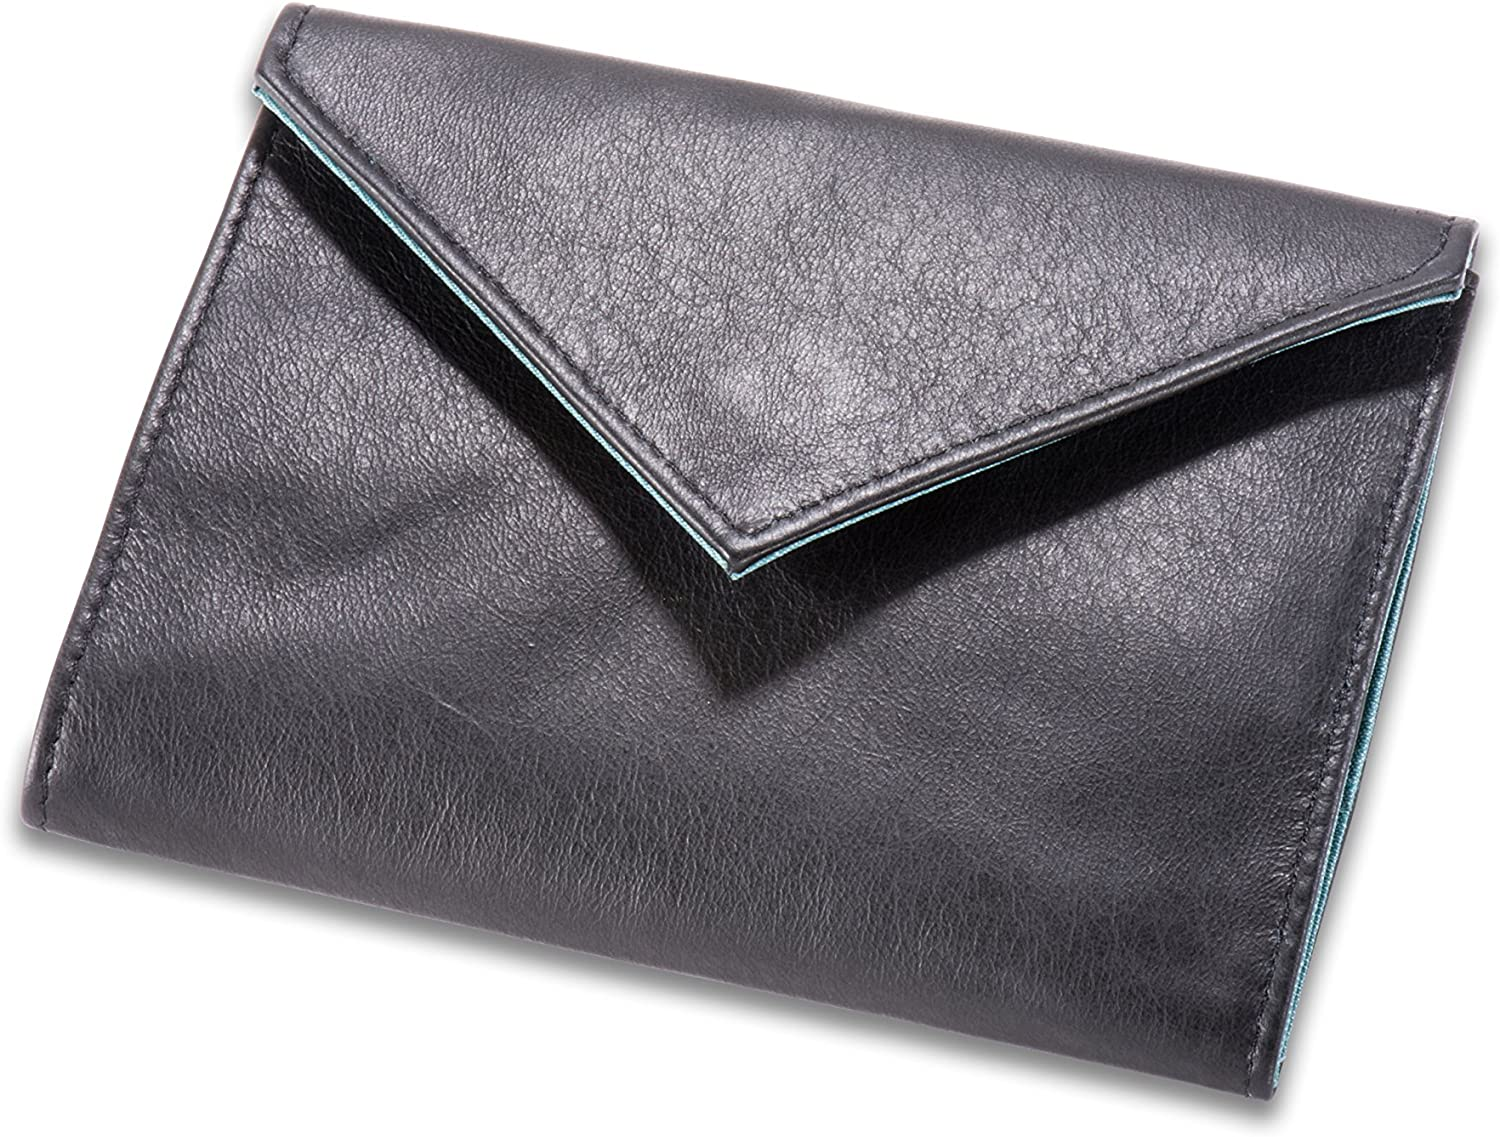 Allett Slim Leather Women's Wallet (Black)